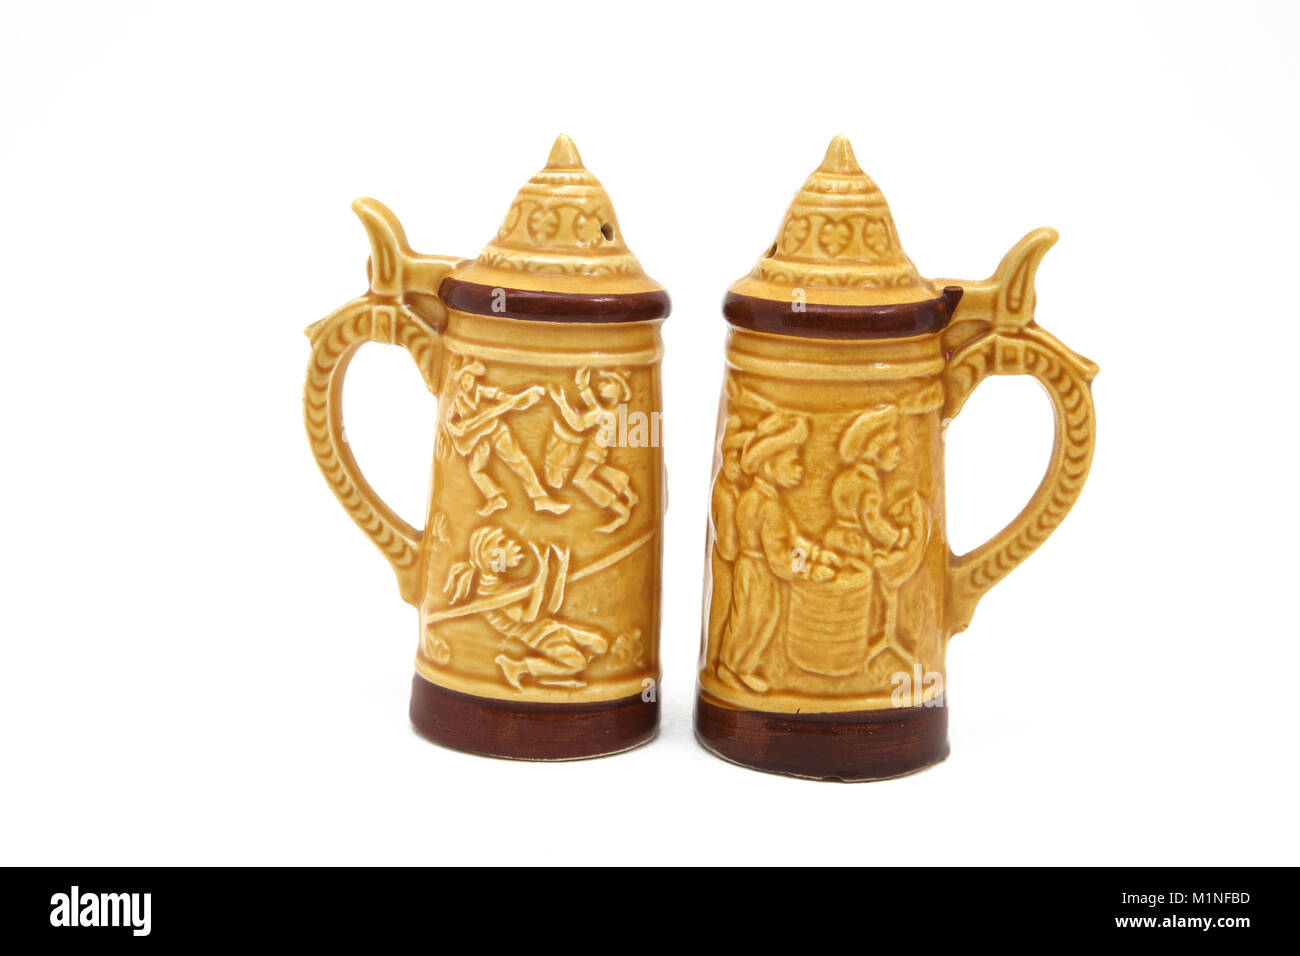 Stein Salt and Pepper Shakers made in Japan Decorated with the Trinidad Limbo Dance and Steel Drums - Stock Image